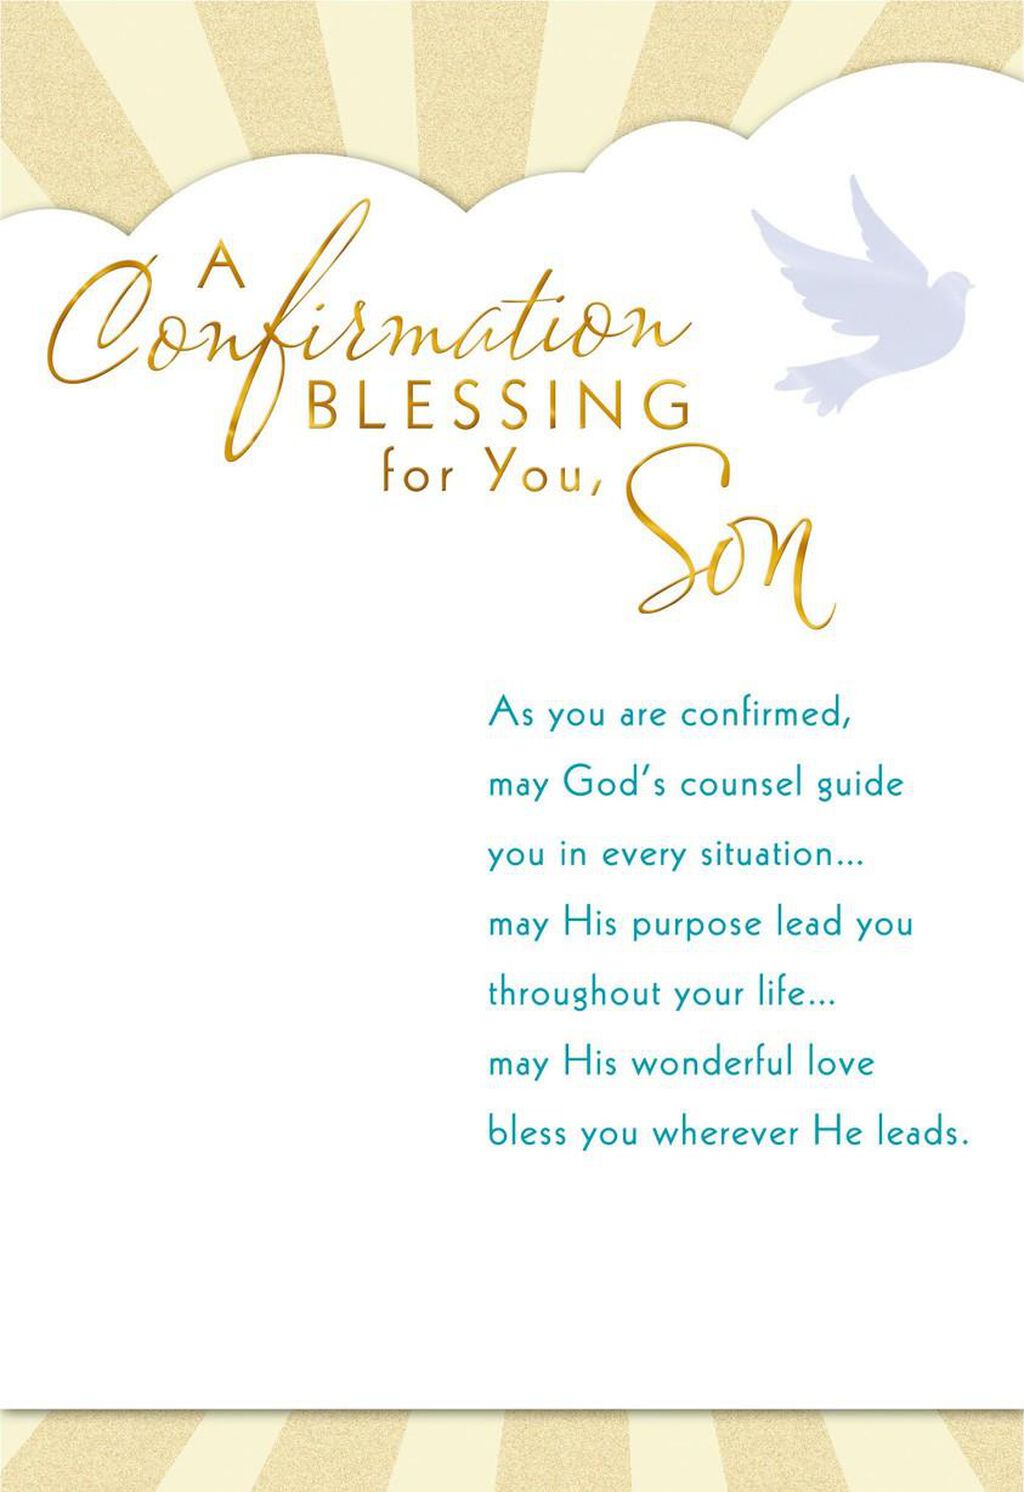 May Gods Counsel Guide You Confirmation Card For Son Greeting